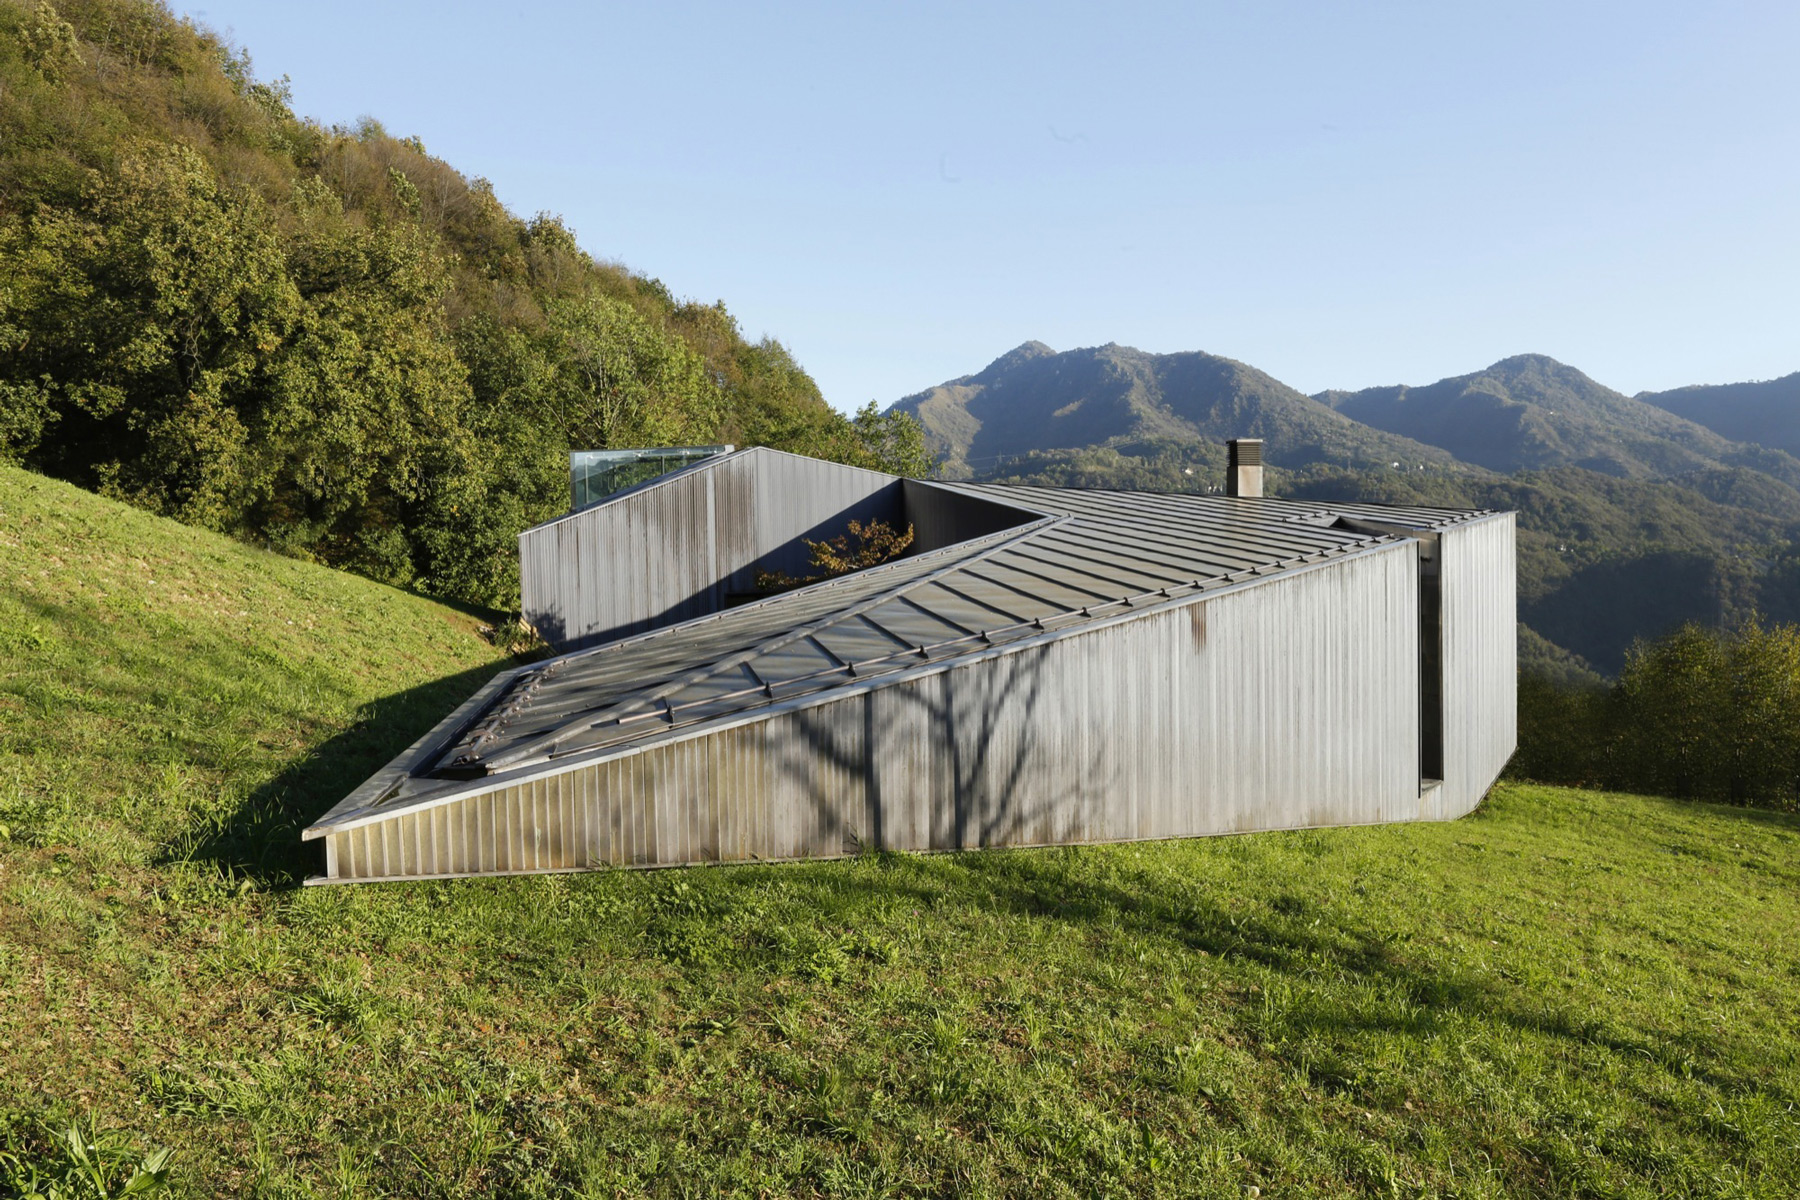 Alps Villa / Camillo Botticini (11)